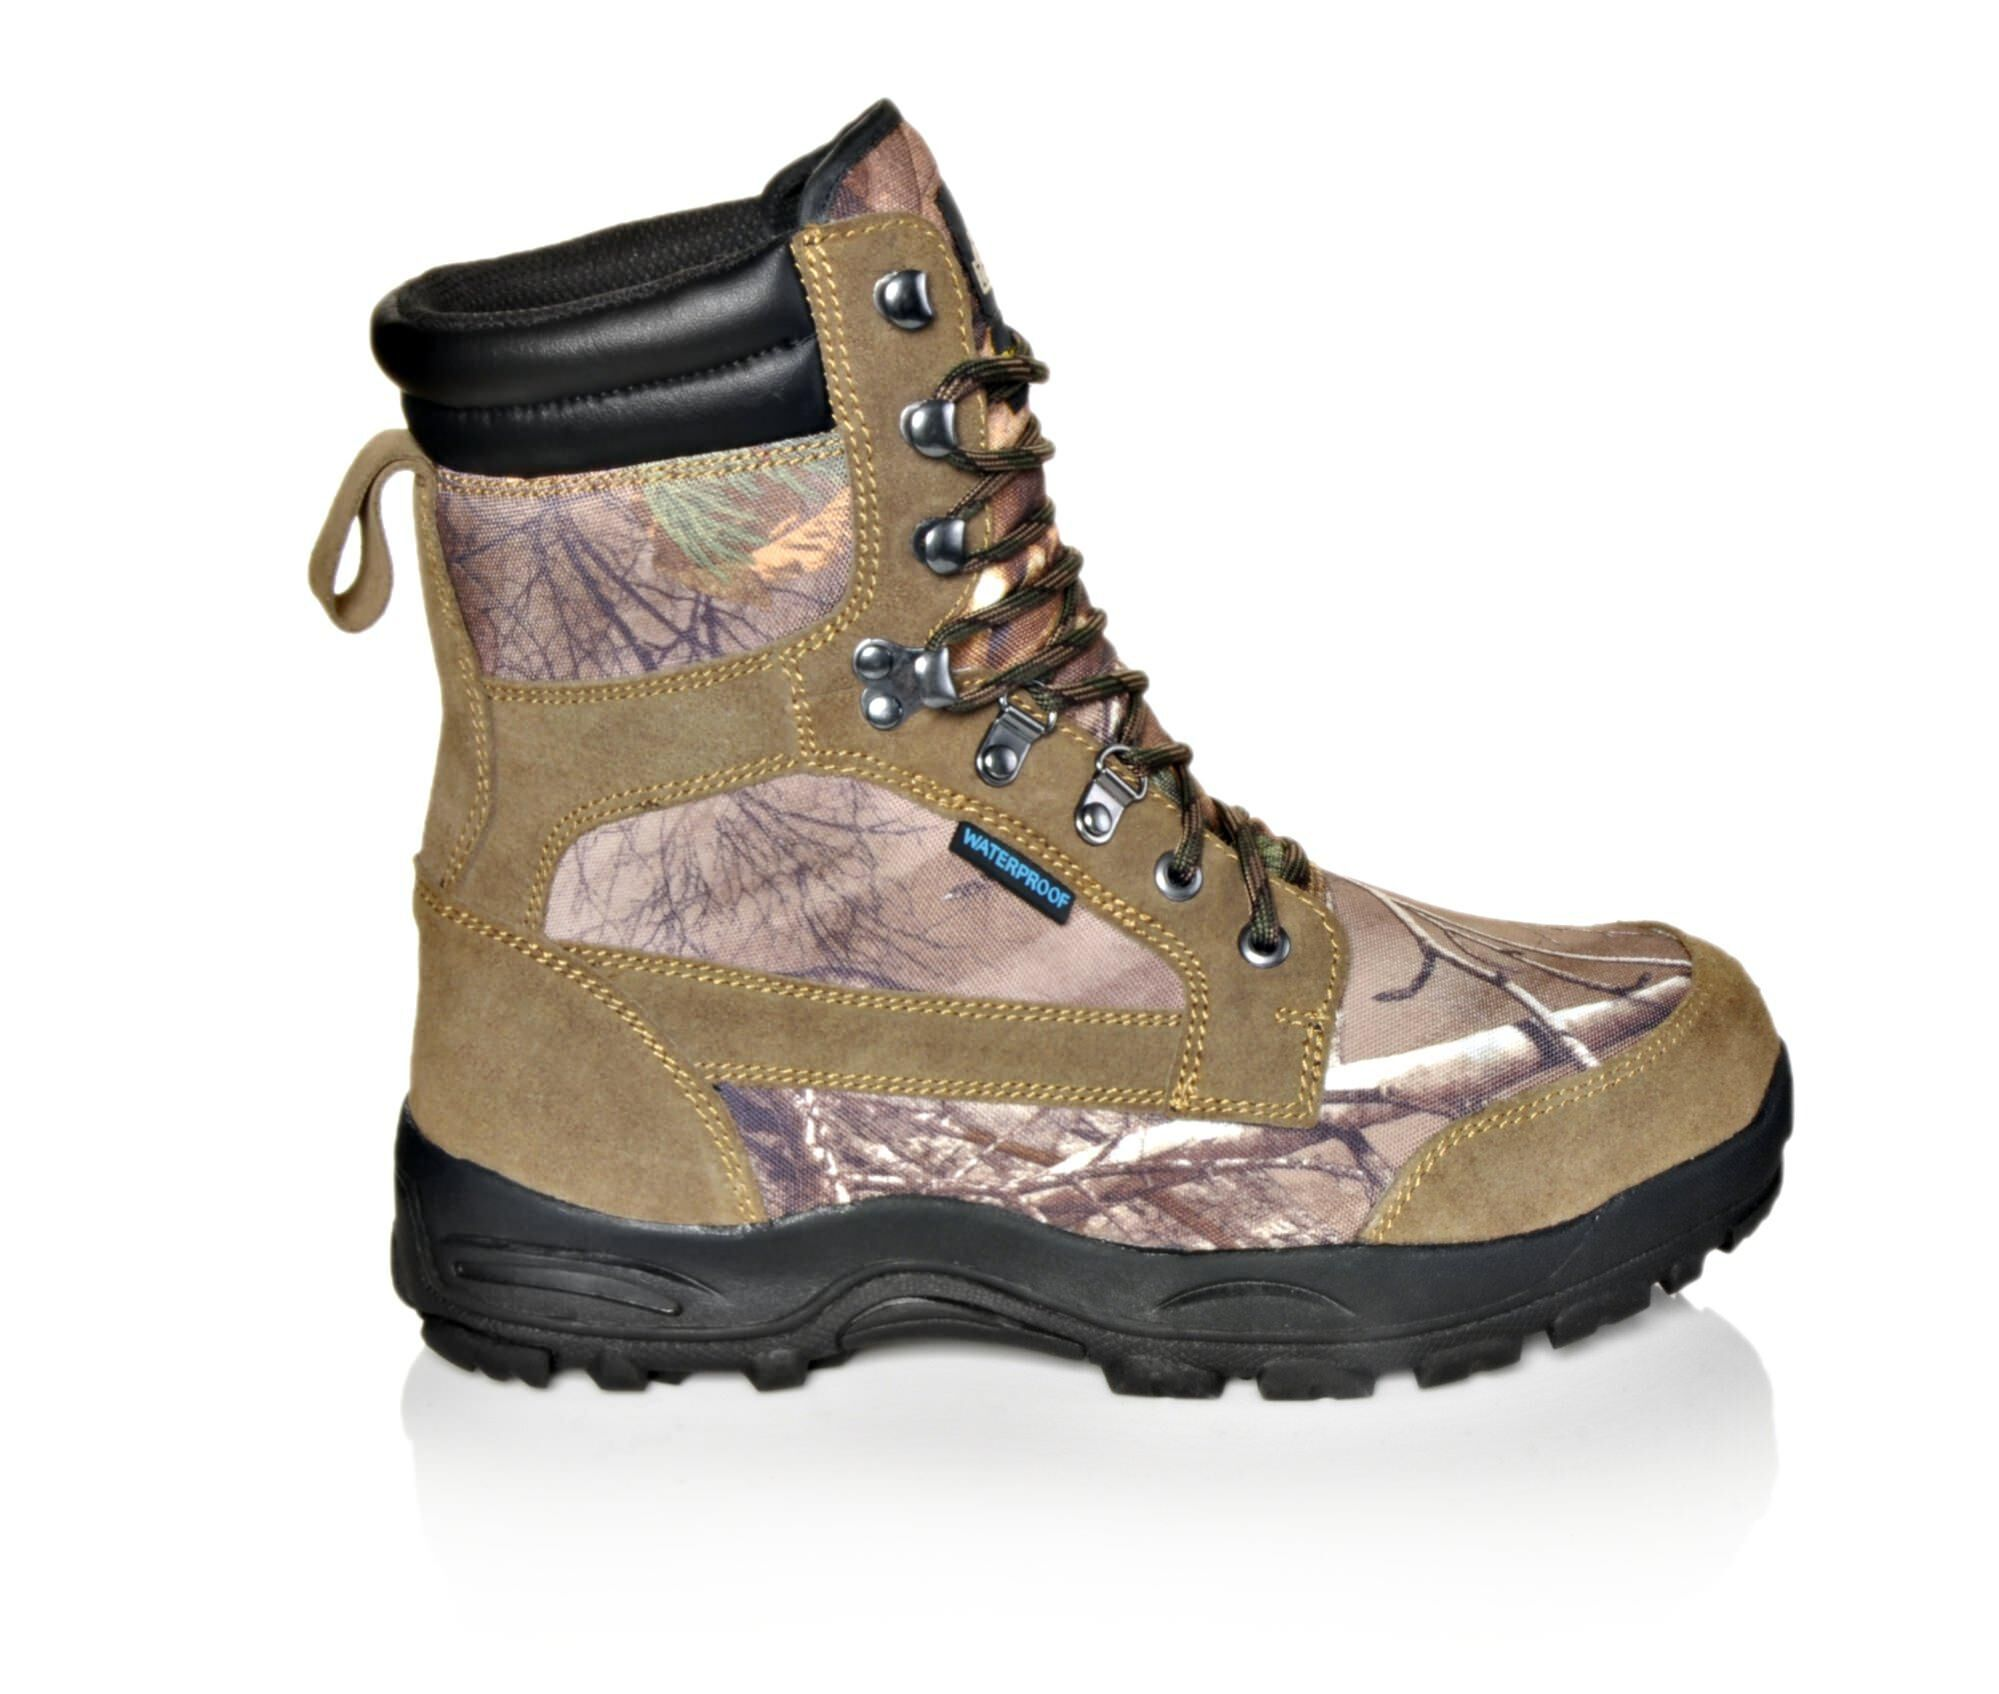 Men's Itasca Sonoma Big Buck 800 Insulated Boots fashionable for sale ViaJXBHlac